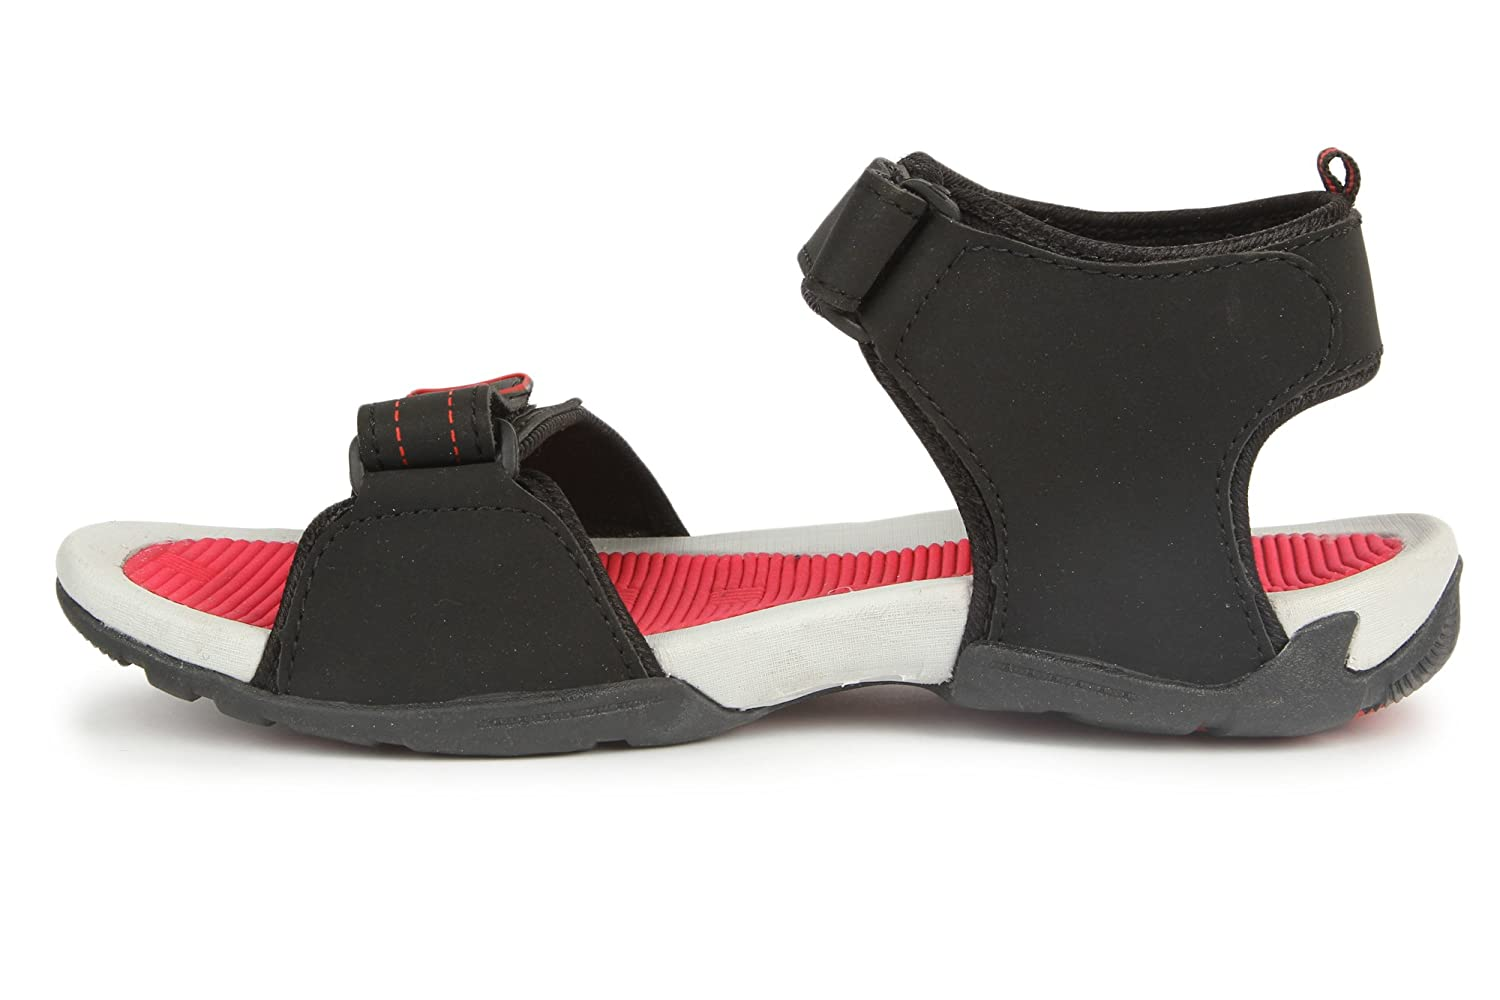 Mmojah Mens Easy-22 Black/Red Sandal -9